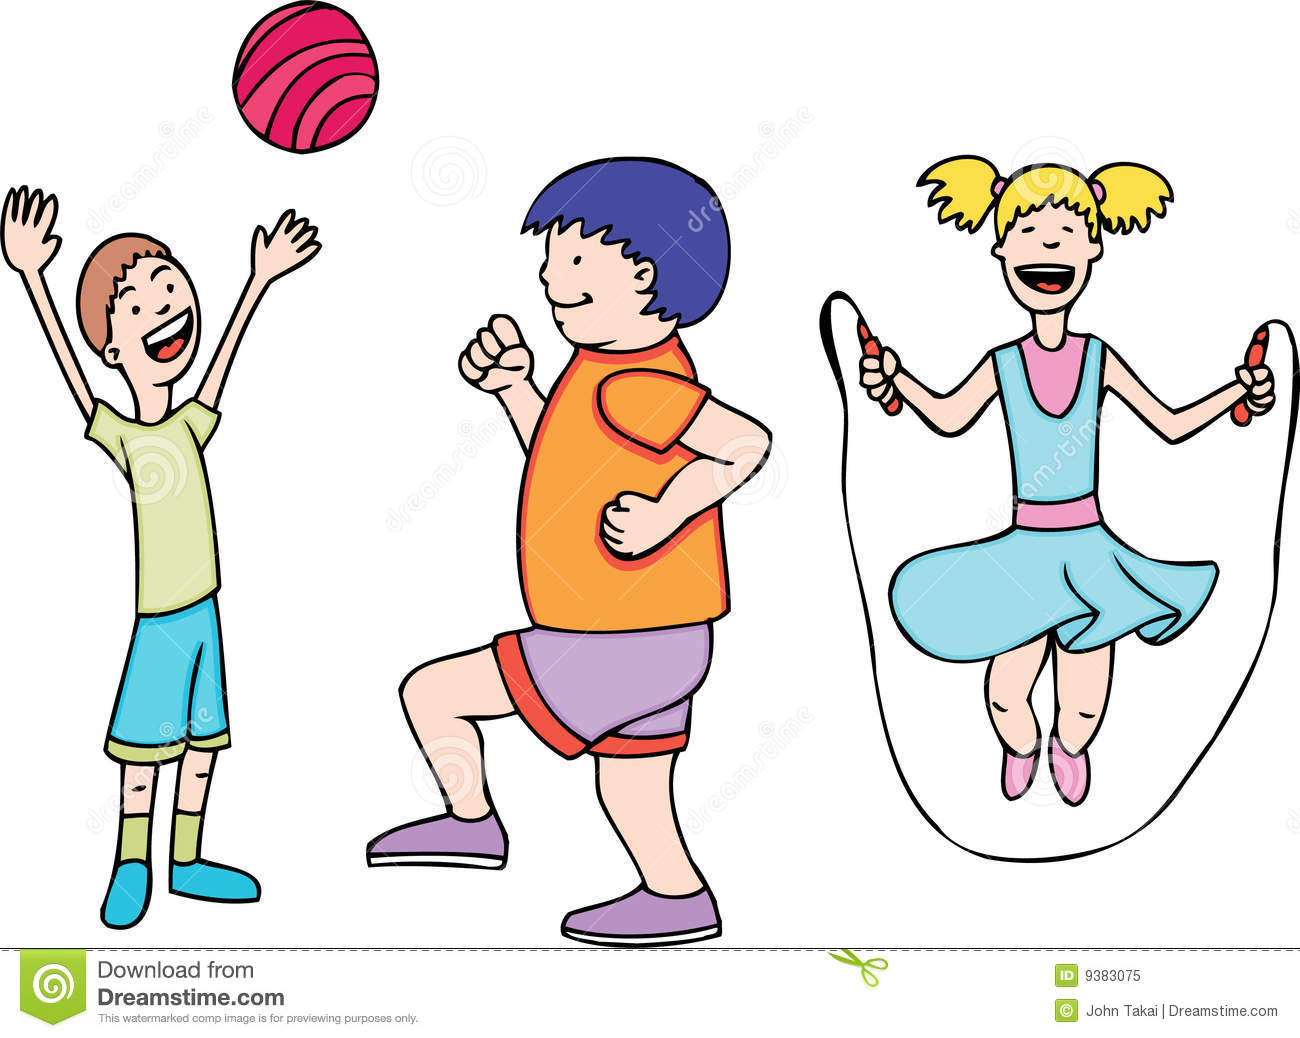 children exercise - Exercise Pictures For Kids